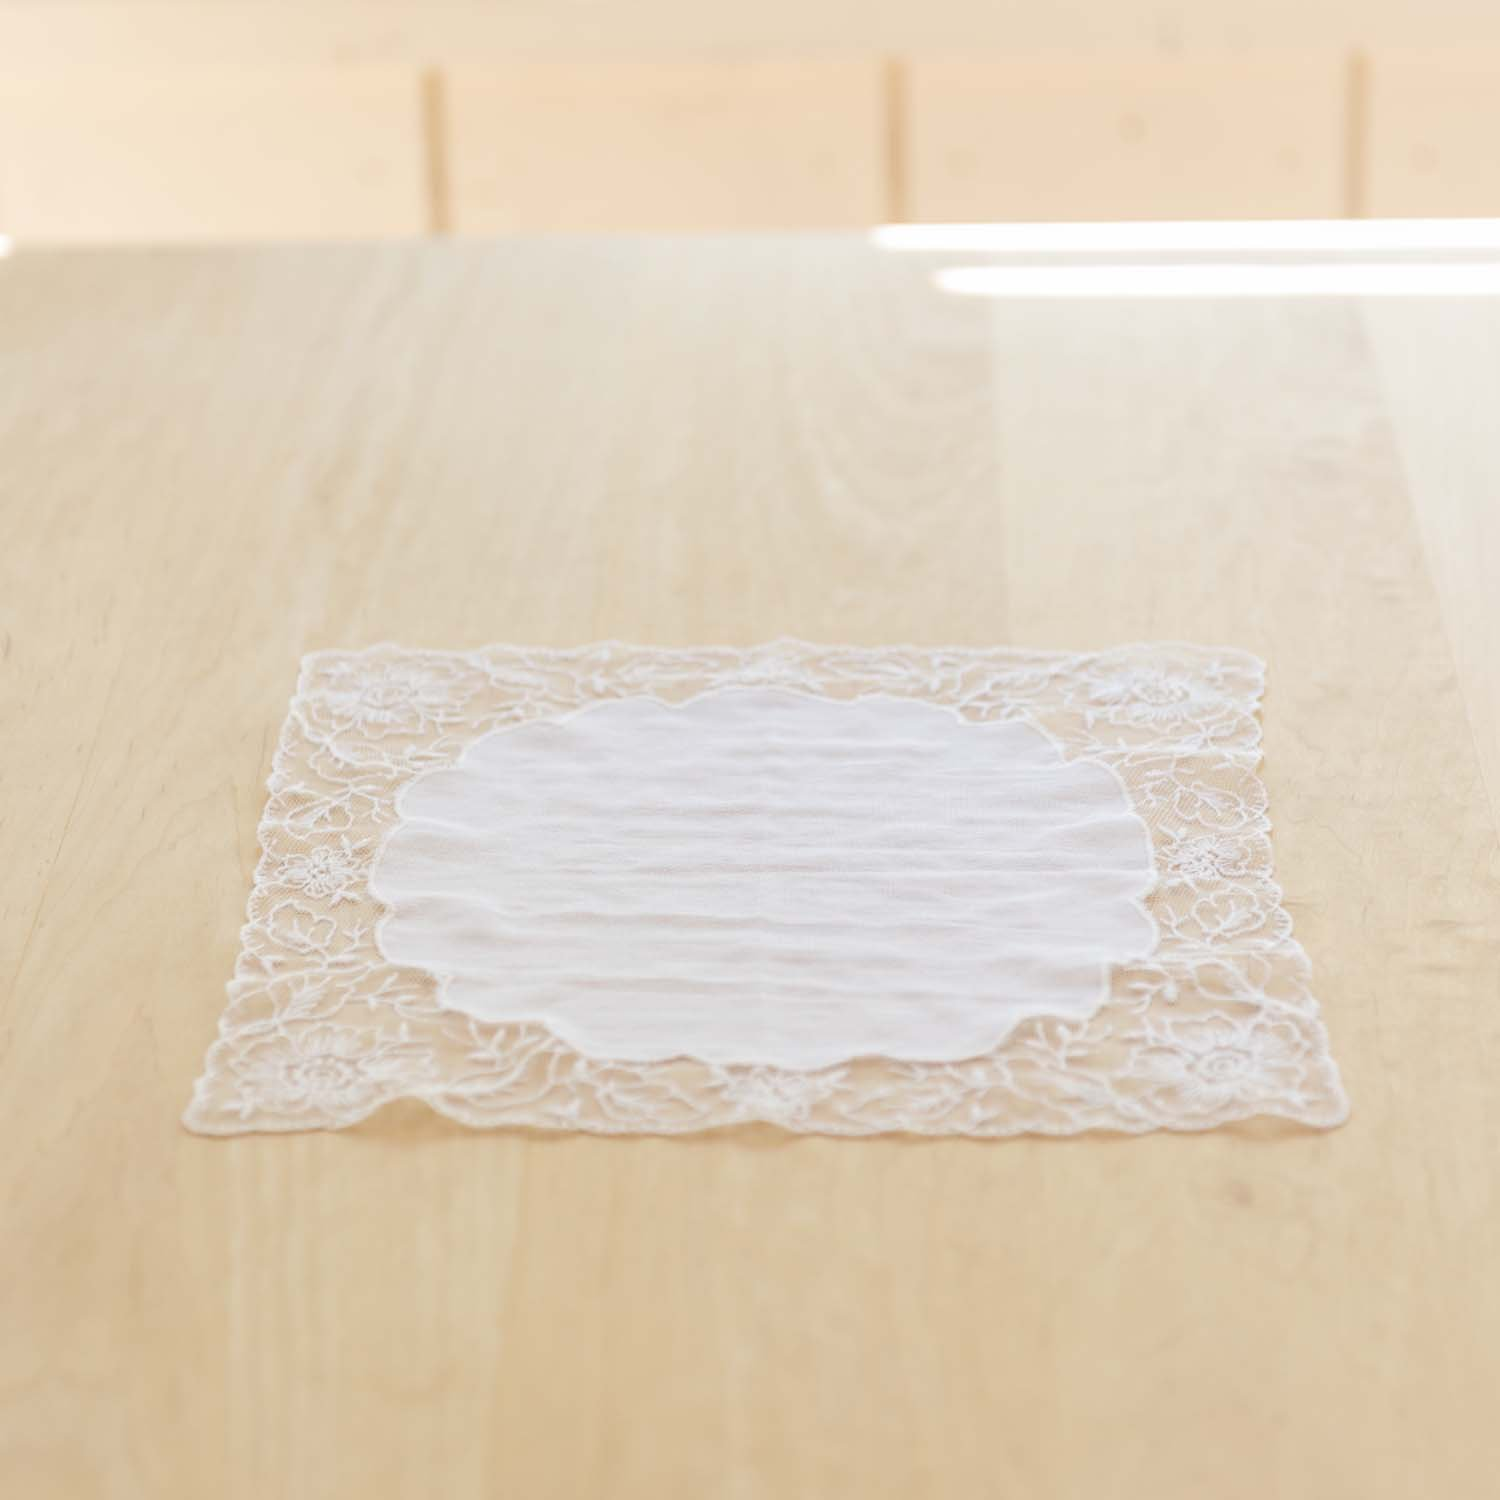 <img class='new_mark_img1' src='https://img.shop-pro.jp/img/new/icons3.gif' style='border:none;display:inline;margin:0px;padding:0px;width:auto;' />Race Flower Place Mat A